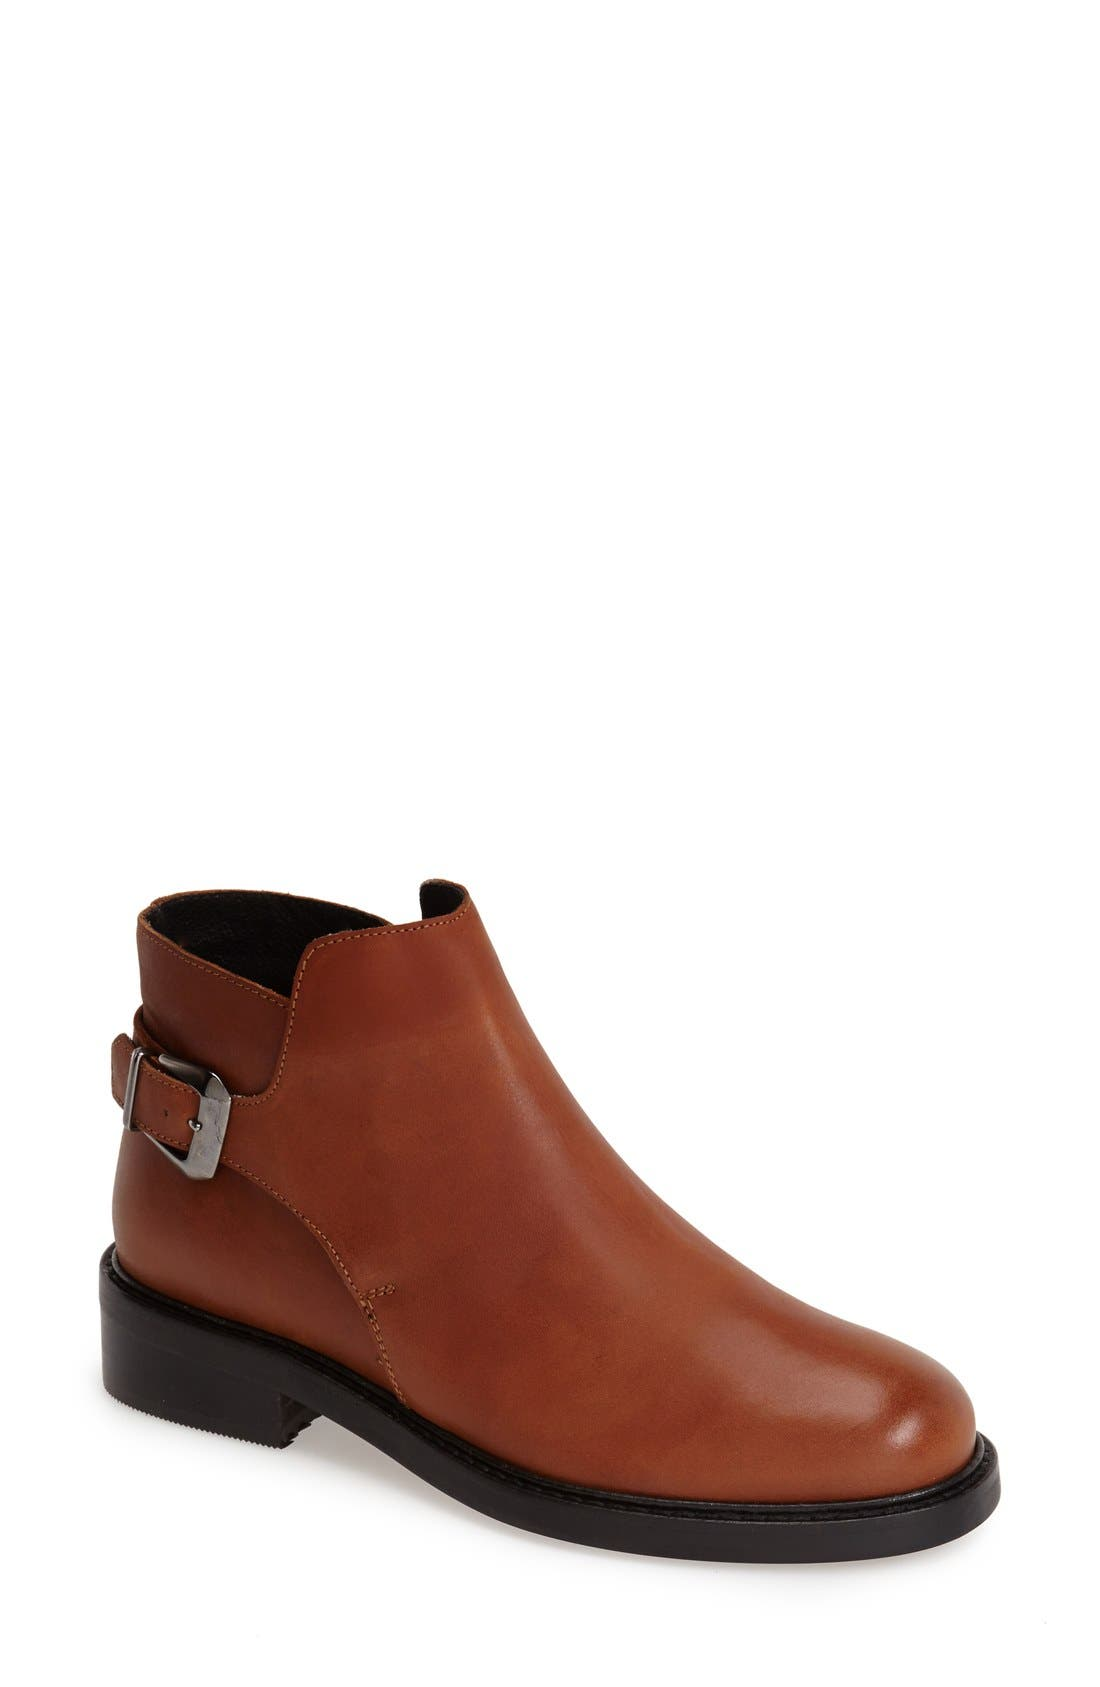 Alternate Image 1 Selected - Topshop 'Actor' Leather Ankle Boot (Women)